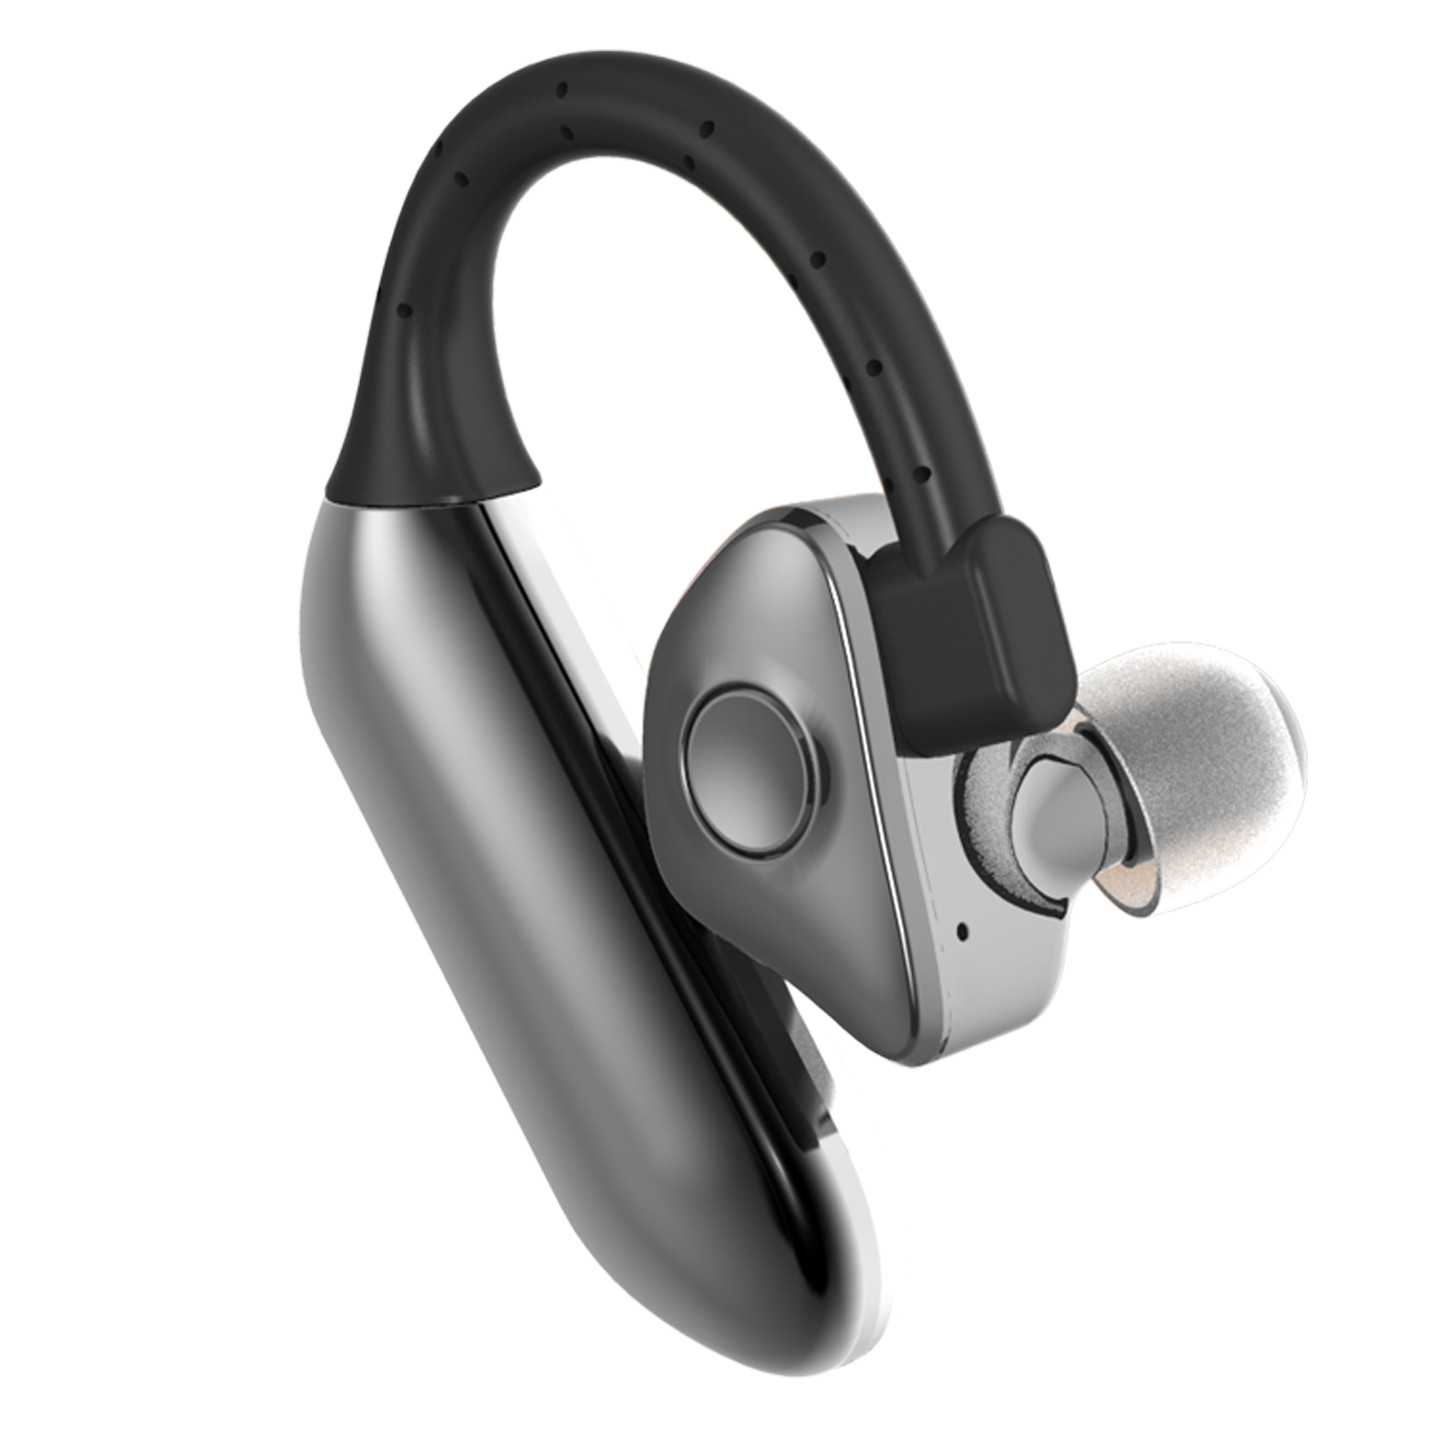 Wireless Bluetooth Headset SPORT Stereo Headphone Mini Earphone For Iphone PC Smartphone Mp3 Hifi new 5 in 1 hi fi wireless headset headphone earphone for tv dvd mp3 pc r179t drop shipping